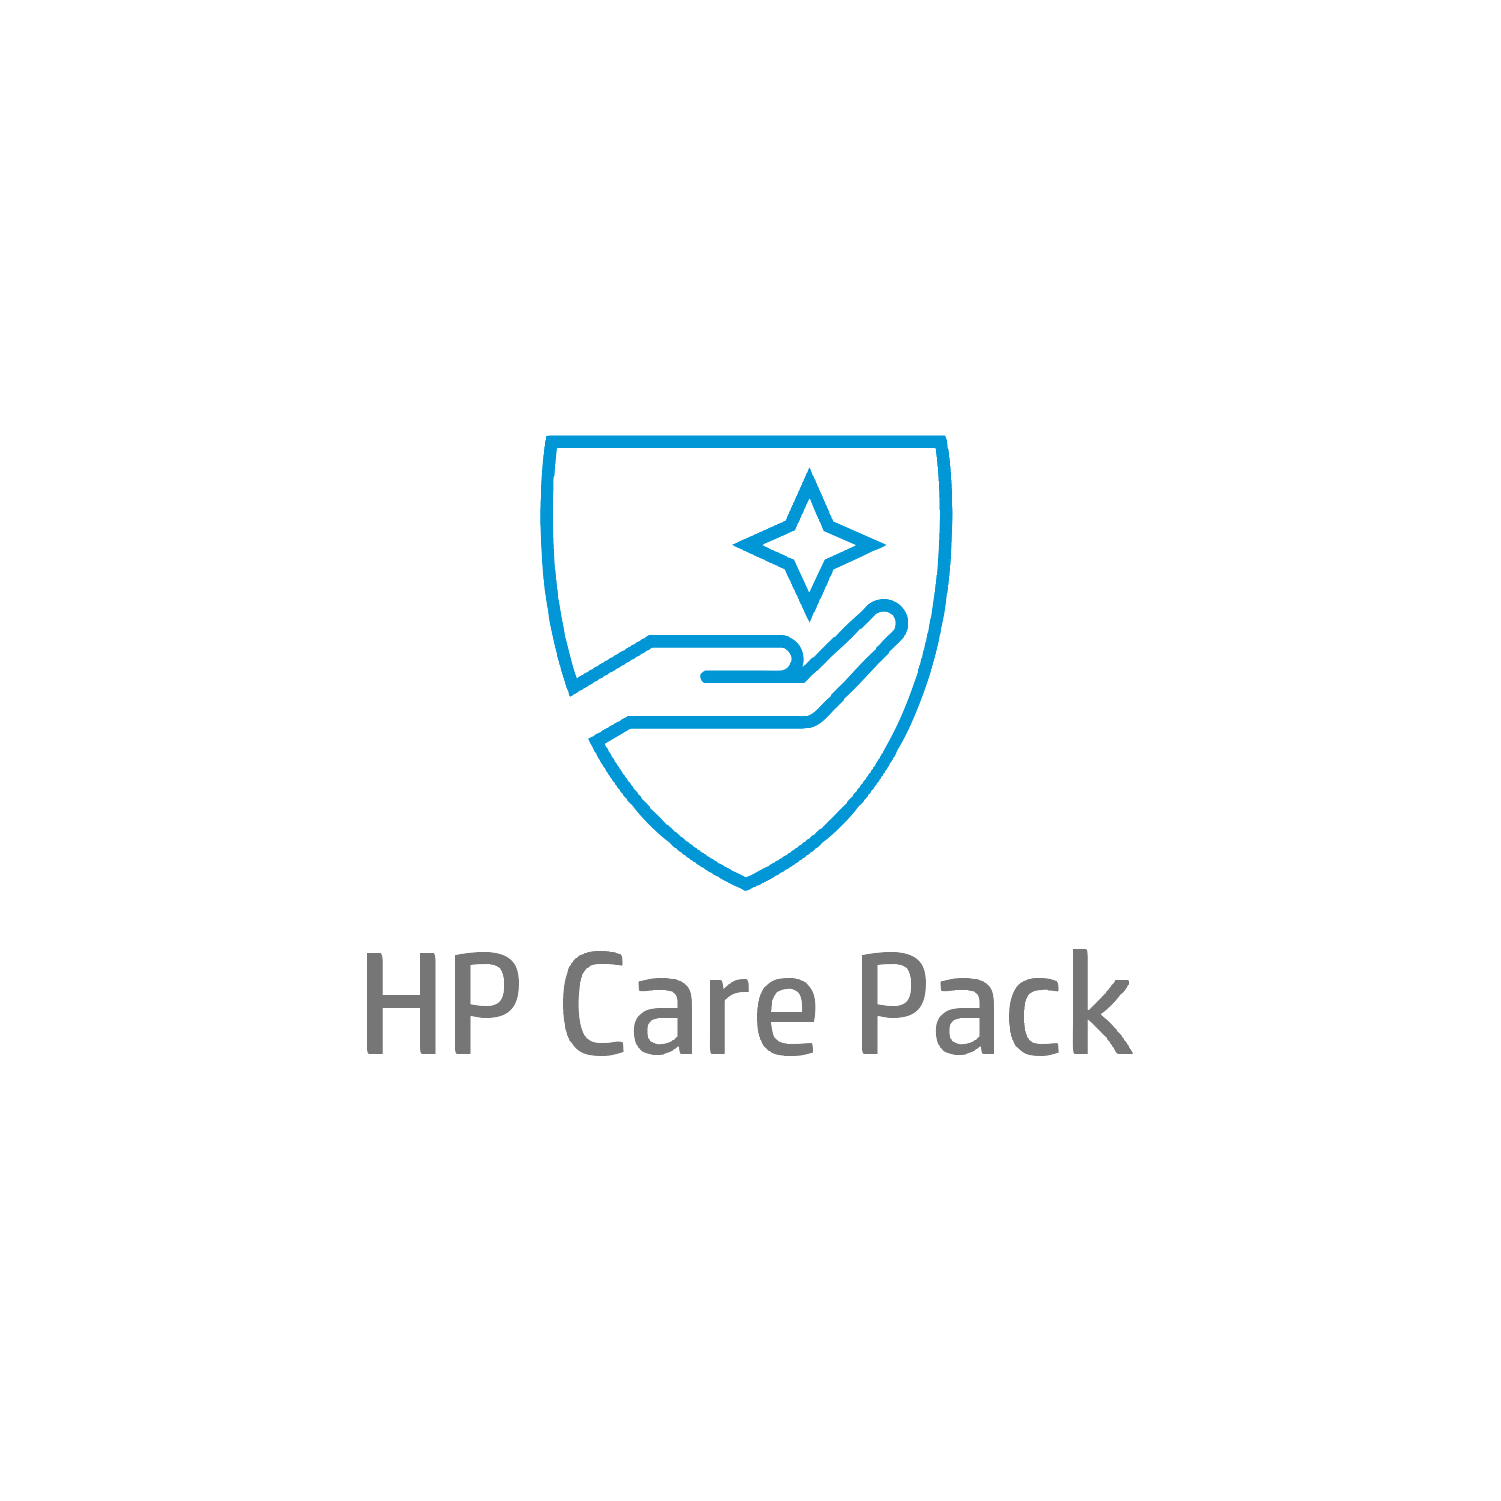 HP 2 Year Absolute Resilience - 1-2499 Unit Volume Service